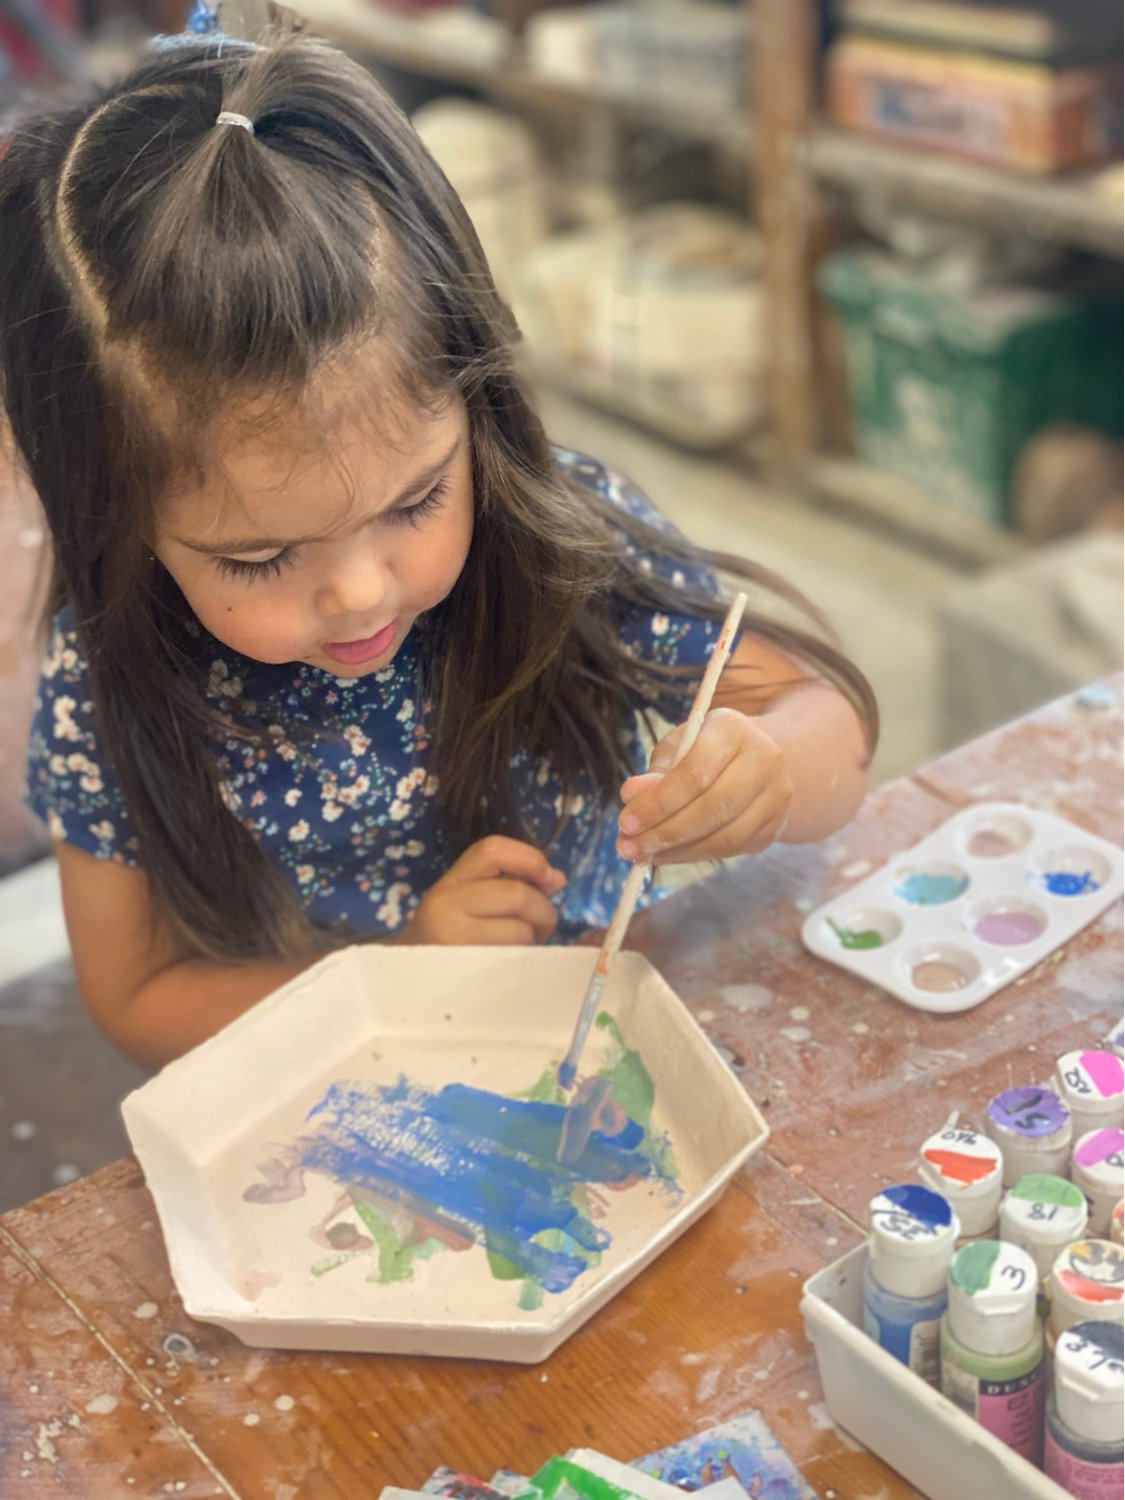 Kids & Clay Day